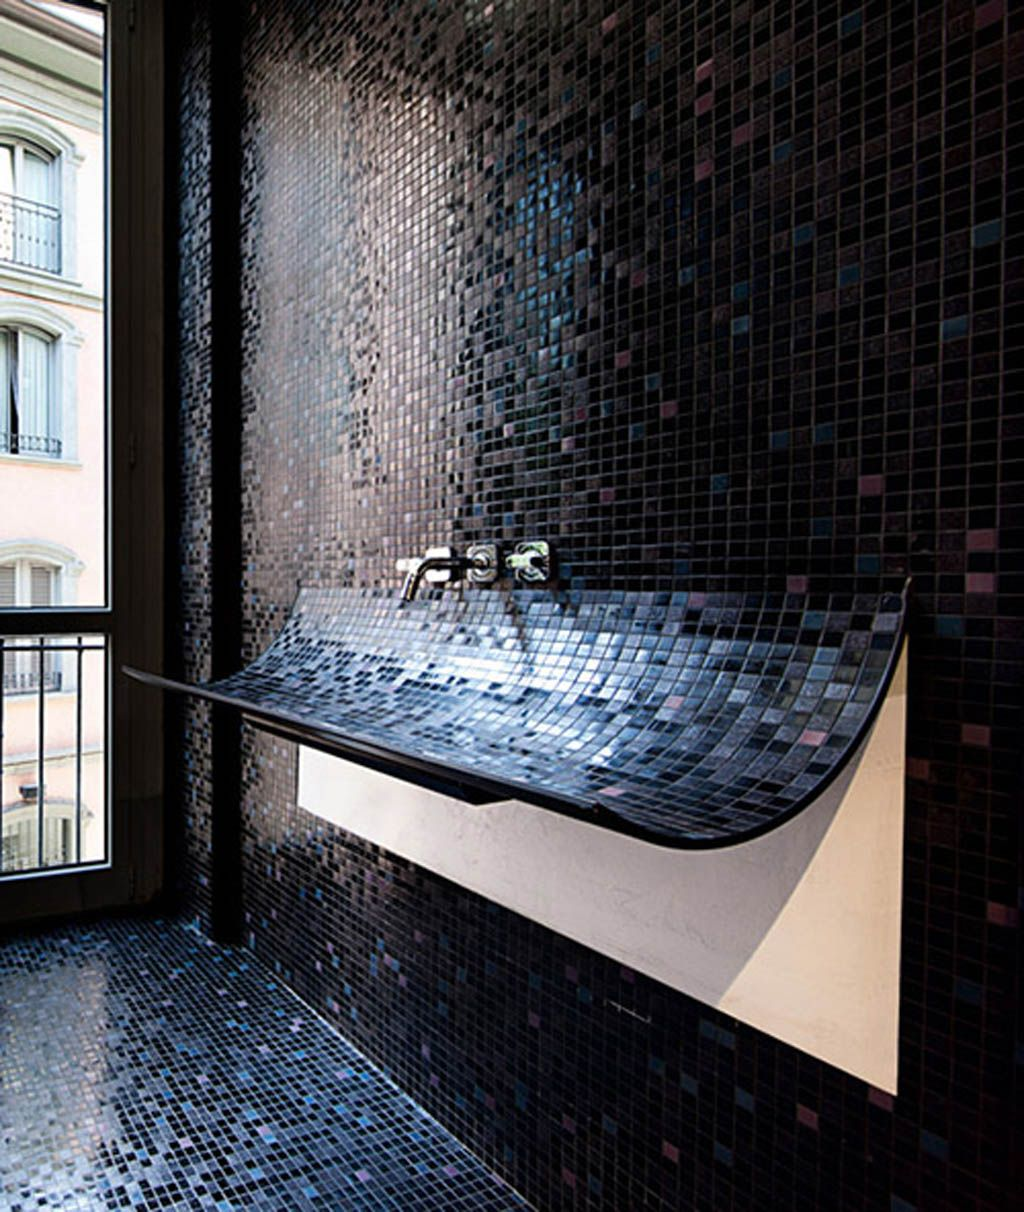 The Bathroom Sink Design Mesmerizing Design Review